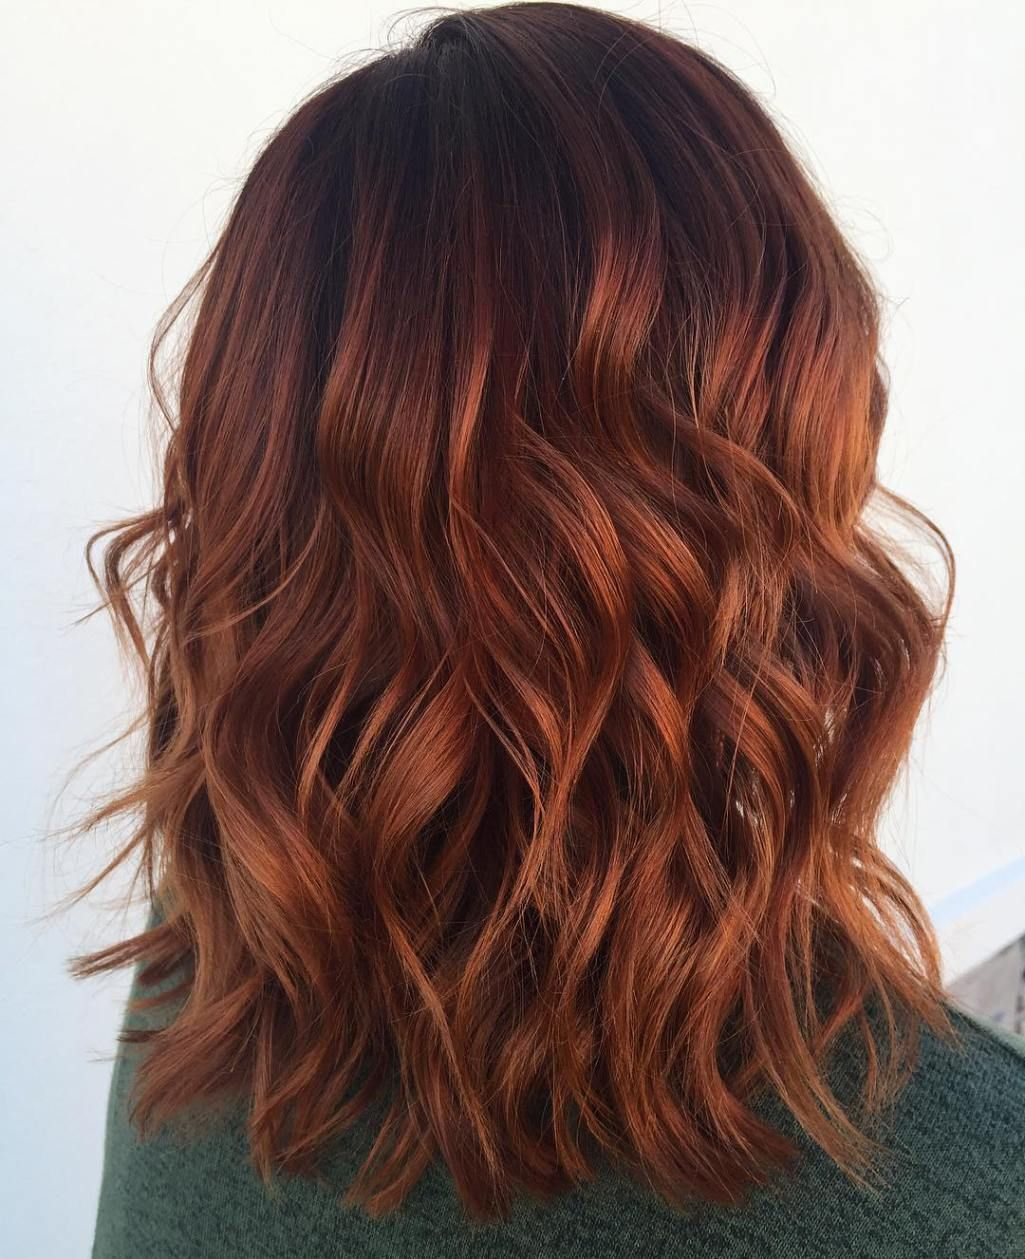 time tfast style lighting for colors hairdromecom auburn soft hair best light and picture winter color cold uncategorized